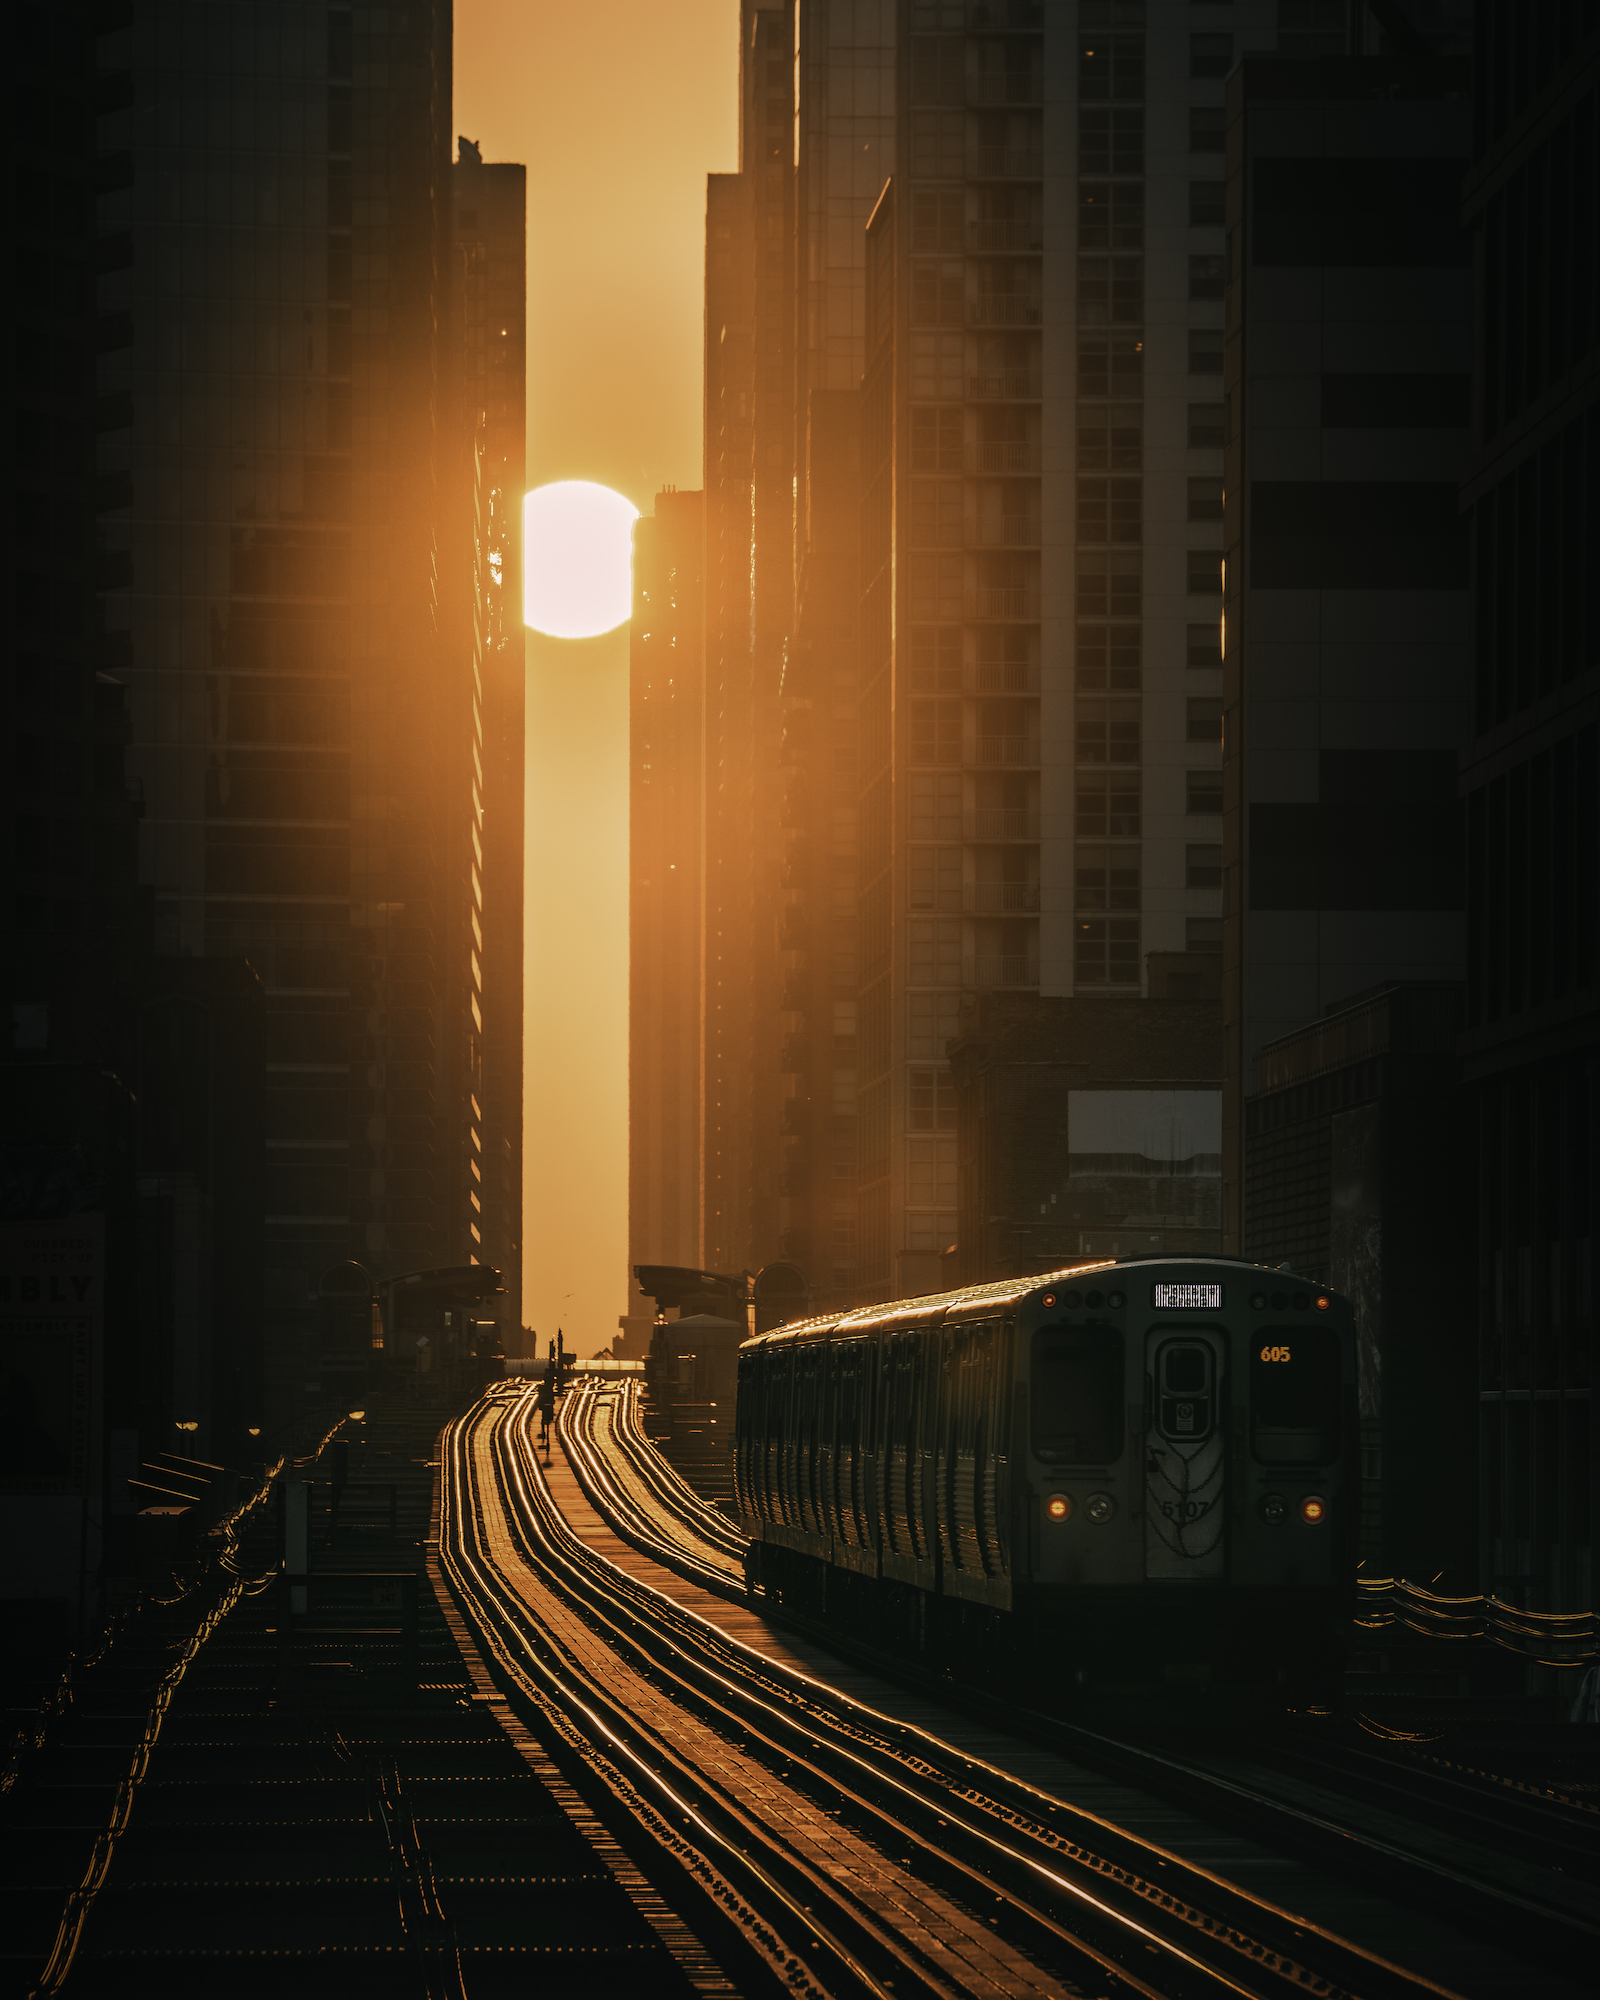 A train makes its way between towering buildings in the golden light of the sun, Chicago, USA